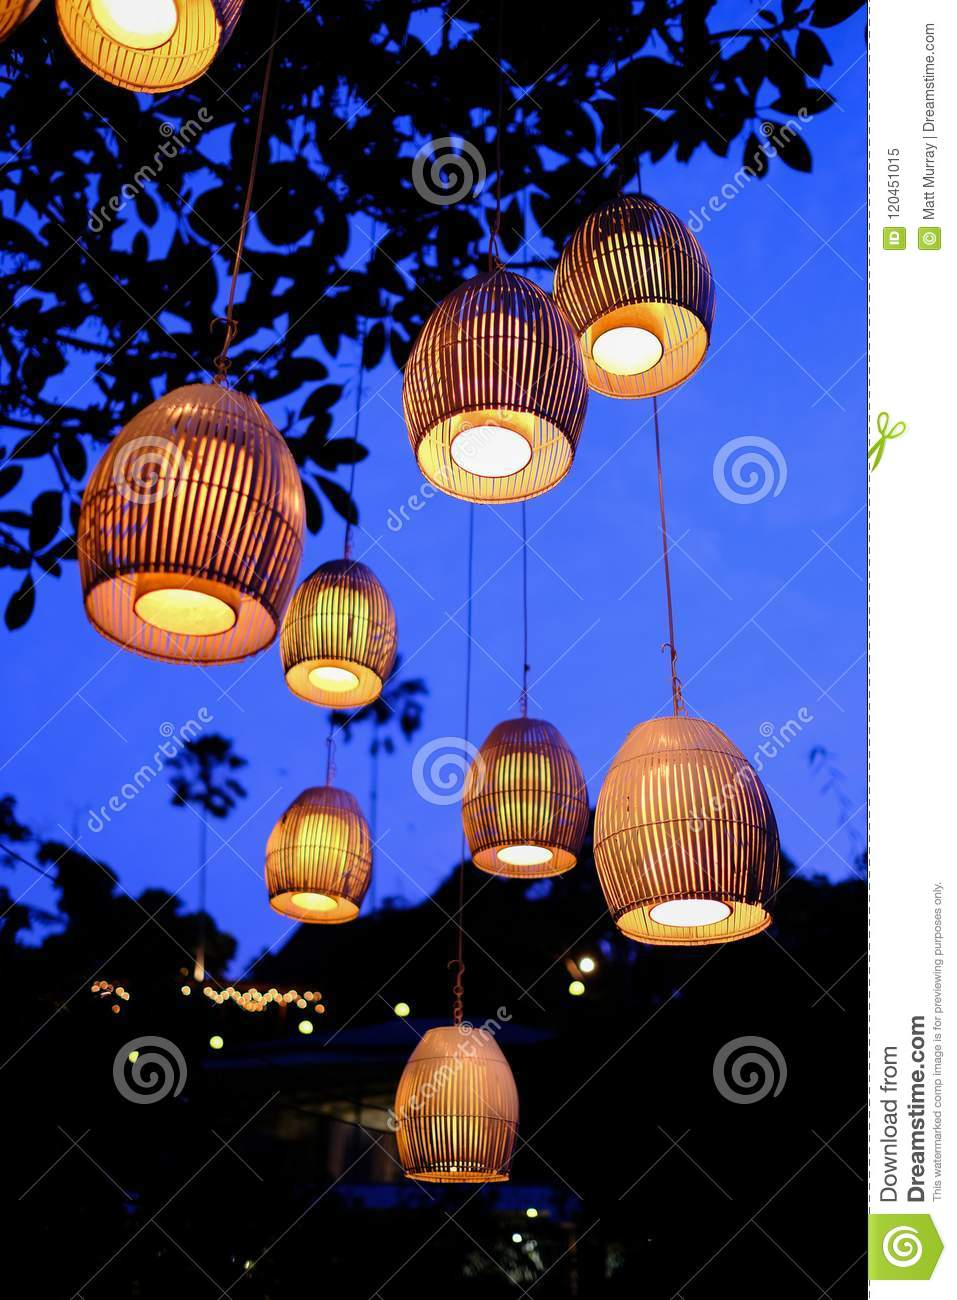 Traditional Balinese Lanterns Hanging From A Tree Stock Image Image Of Balinese Pretty 120451015